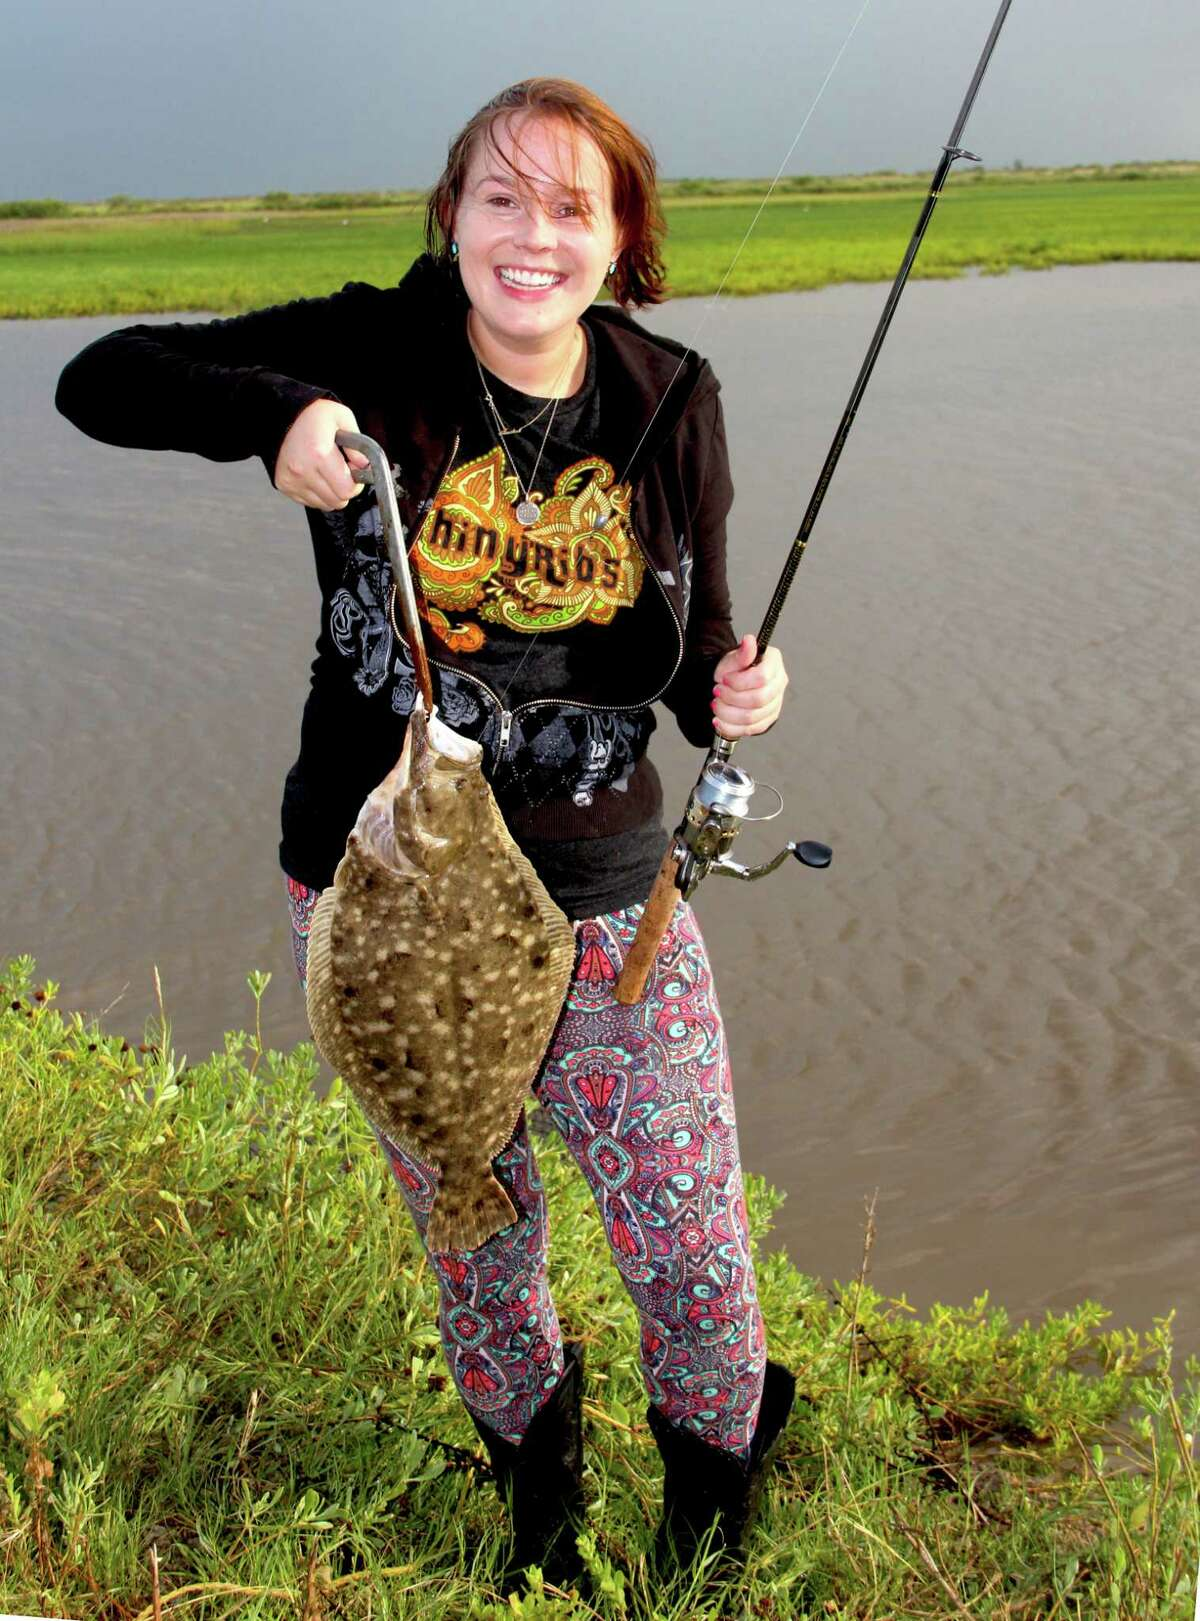 A Texas Parks and Wildlife Department program designed to recruit new anglers allows fishing in scores of state parks and wildlife management areas without requiring anglers hold a valid fishing license.